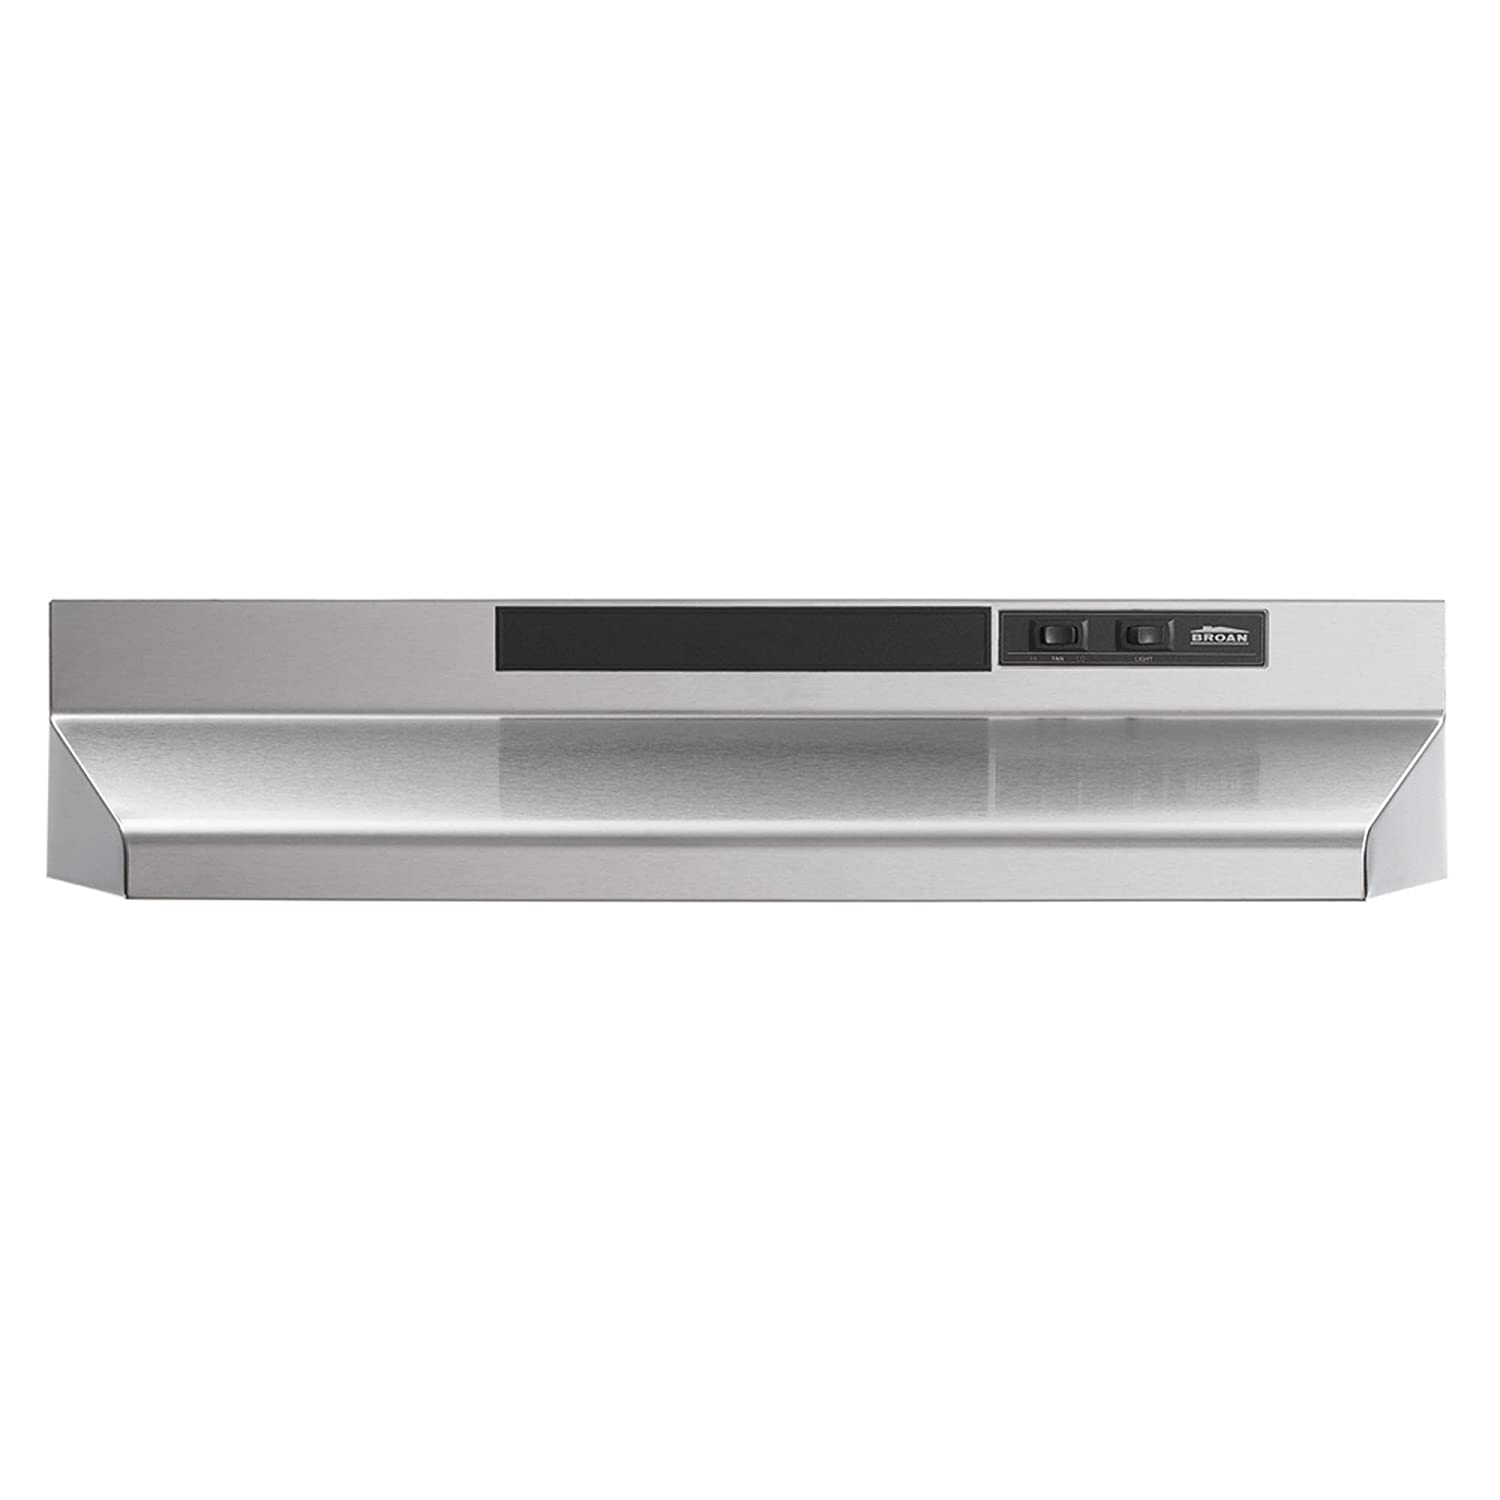 B000A7QJKI Broan-NuTone F403004 Two-Speed Four-Way Convertible Range Hood, 30-Inch, Stainless Steel 61nizstFTnL